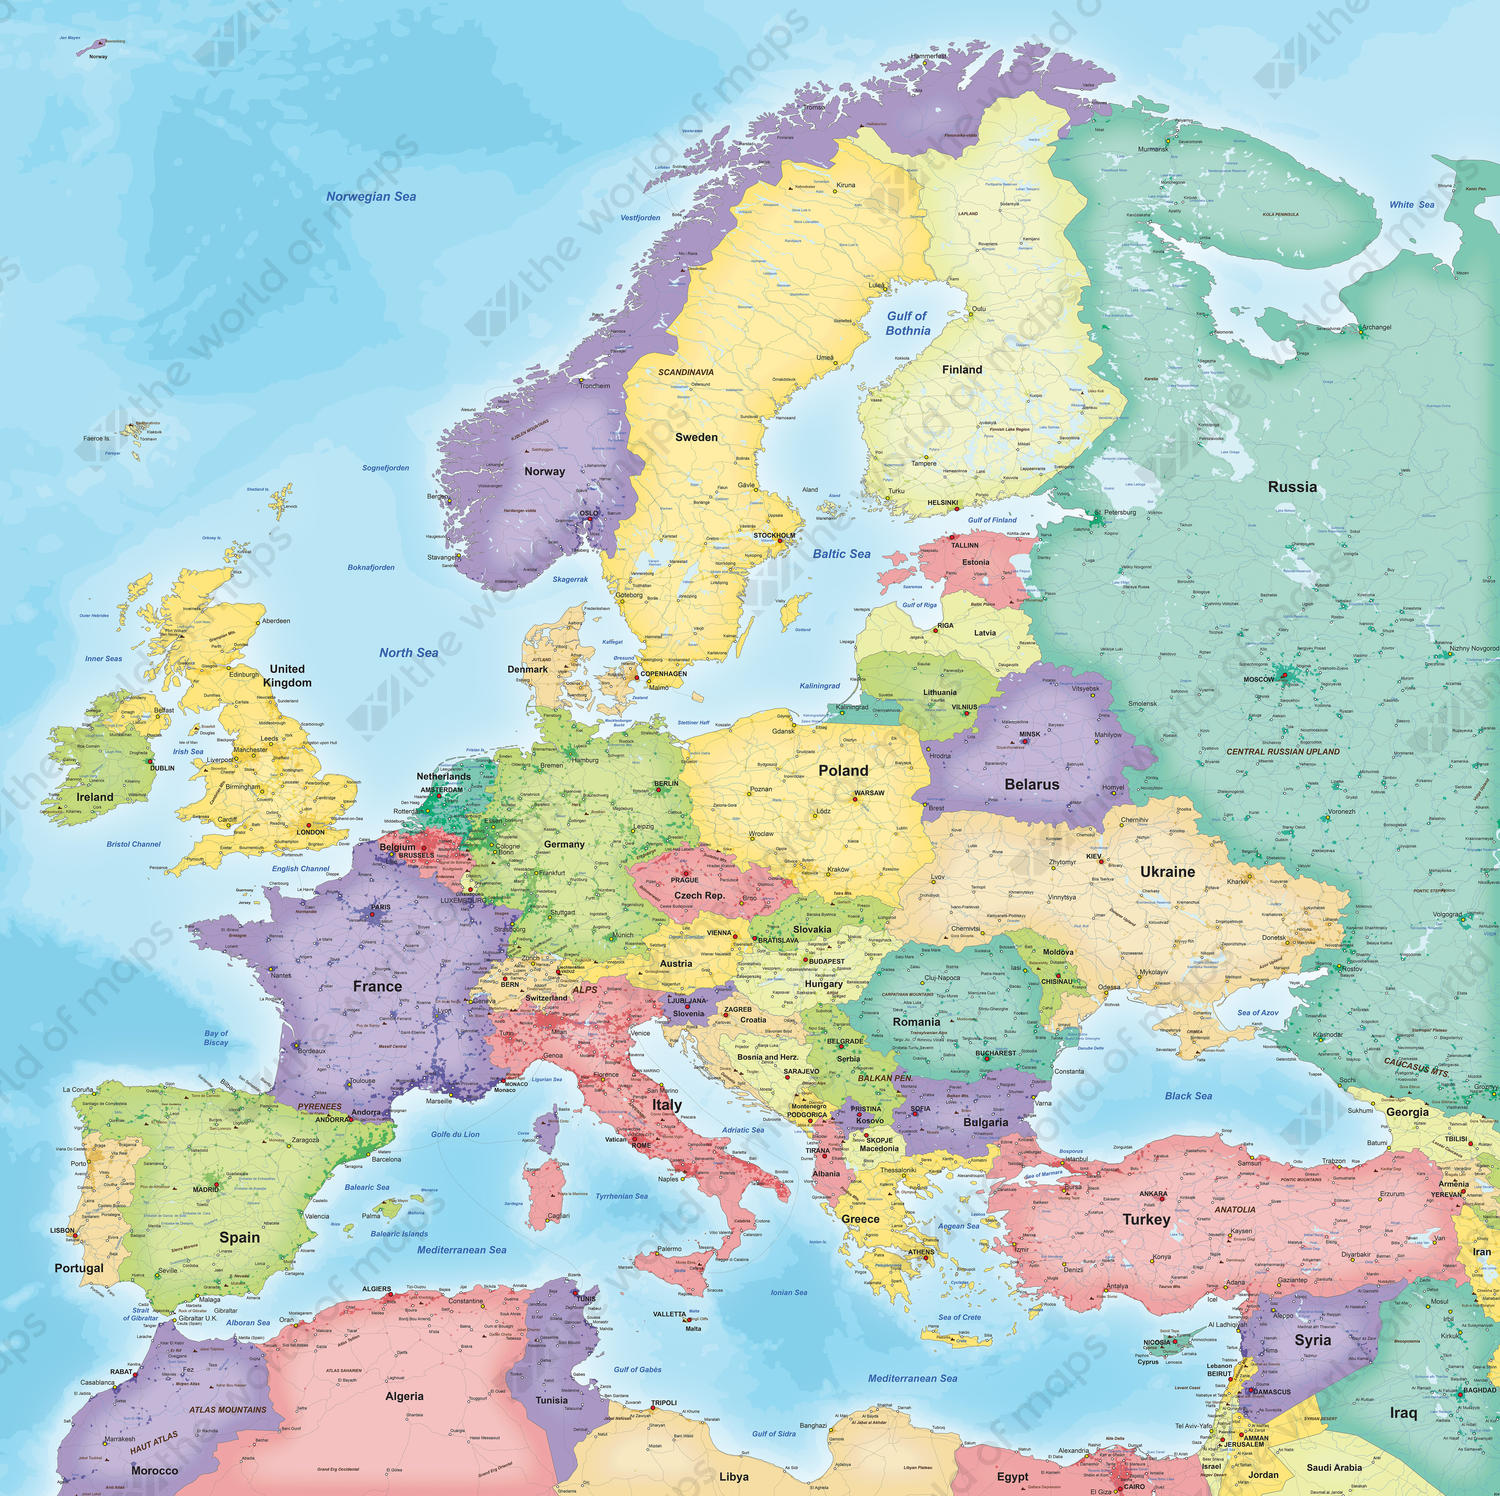 Digital Map of Europe Political 834 | The World of Maps.com